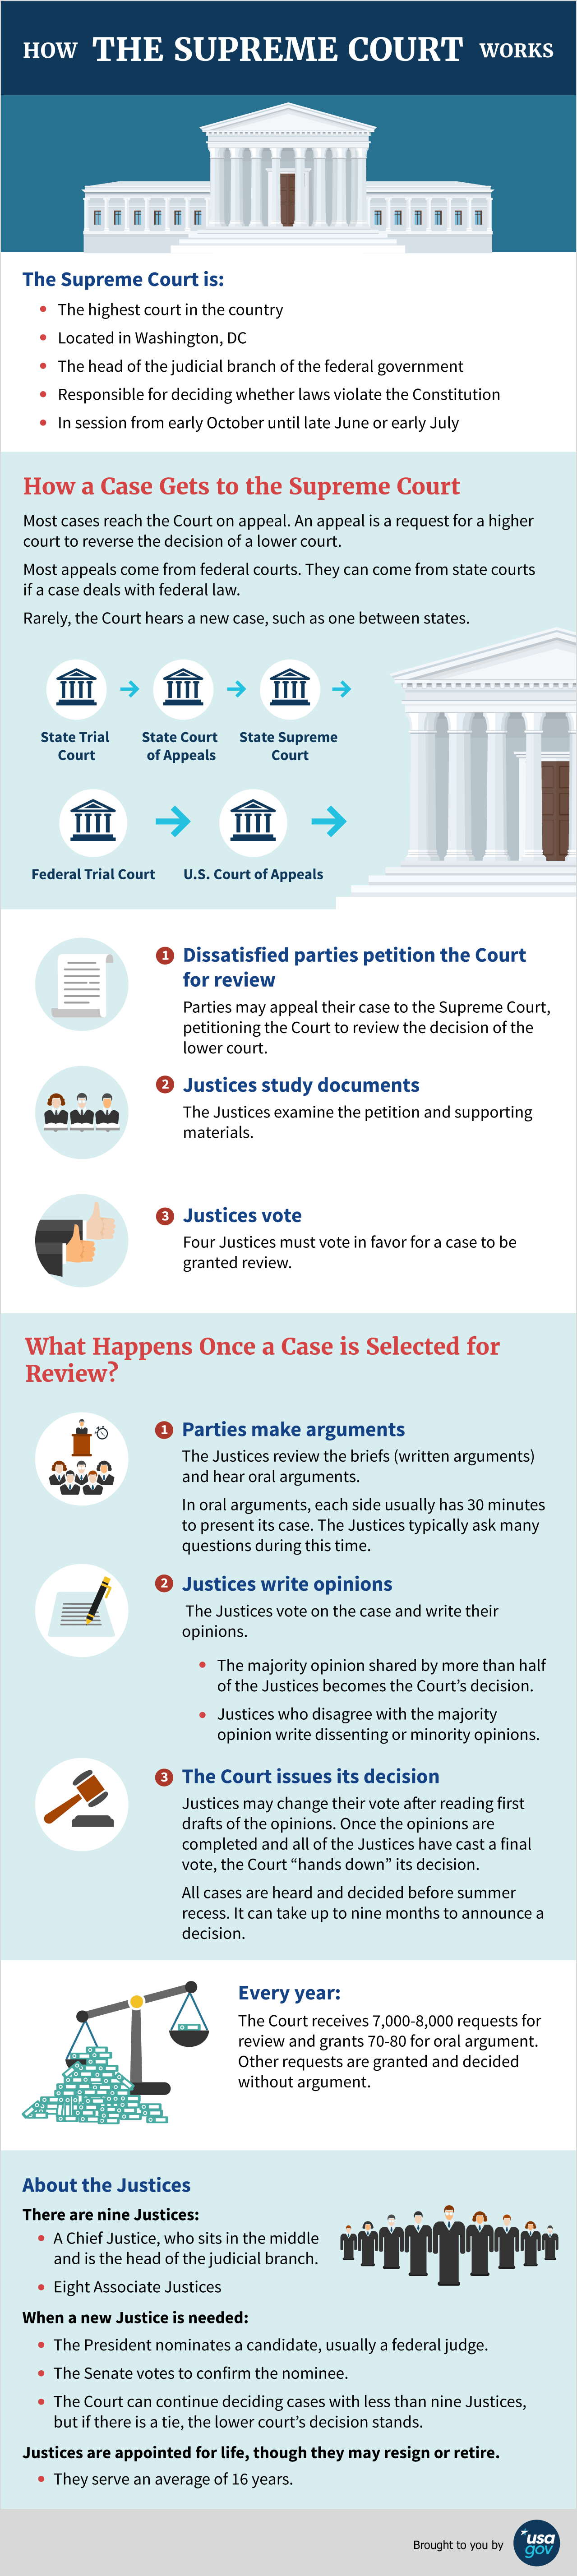 How the Supreme Court of the United States Works